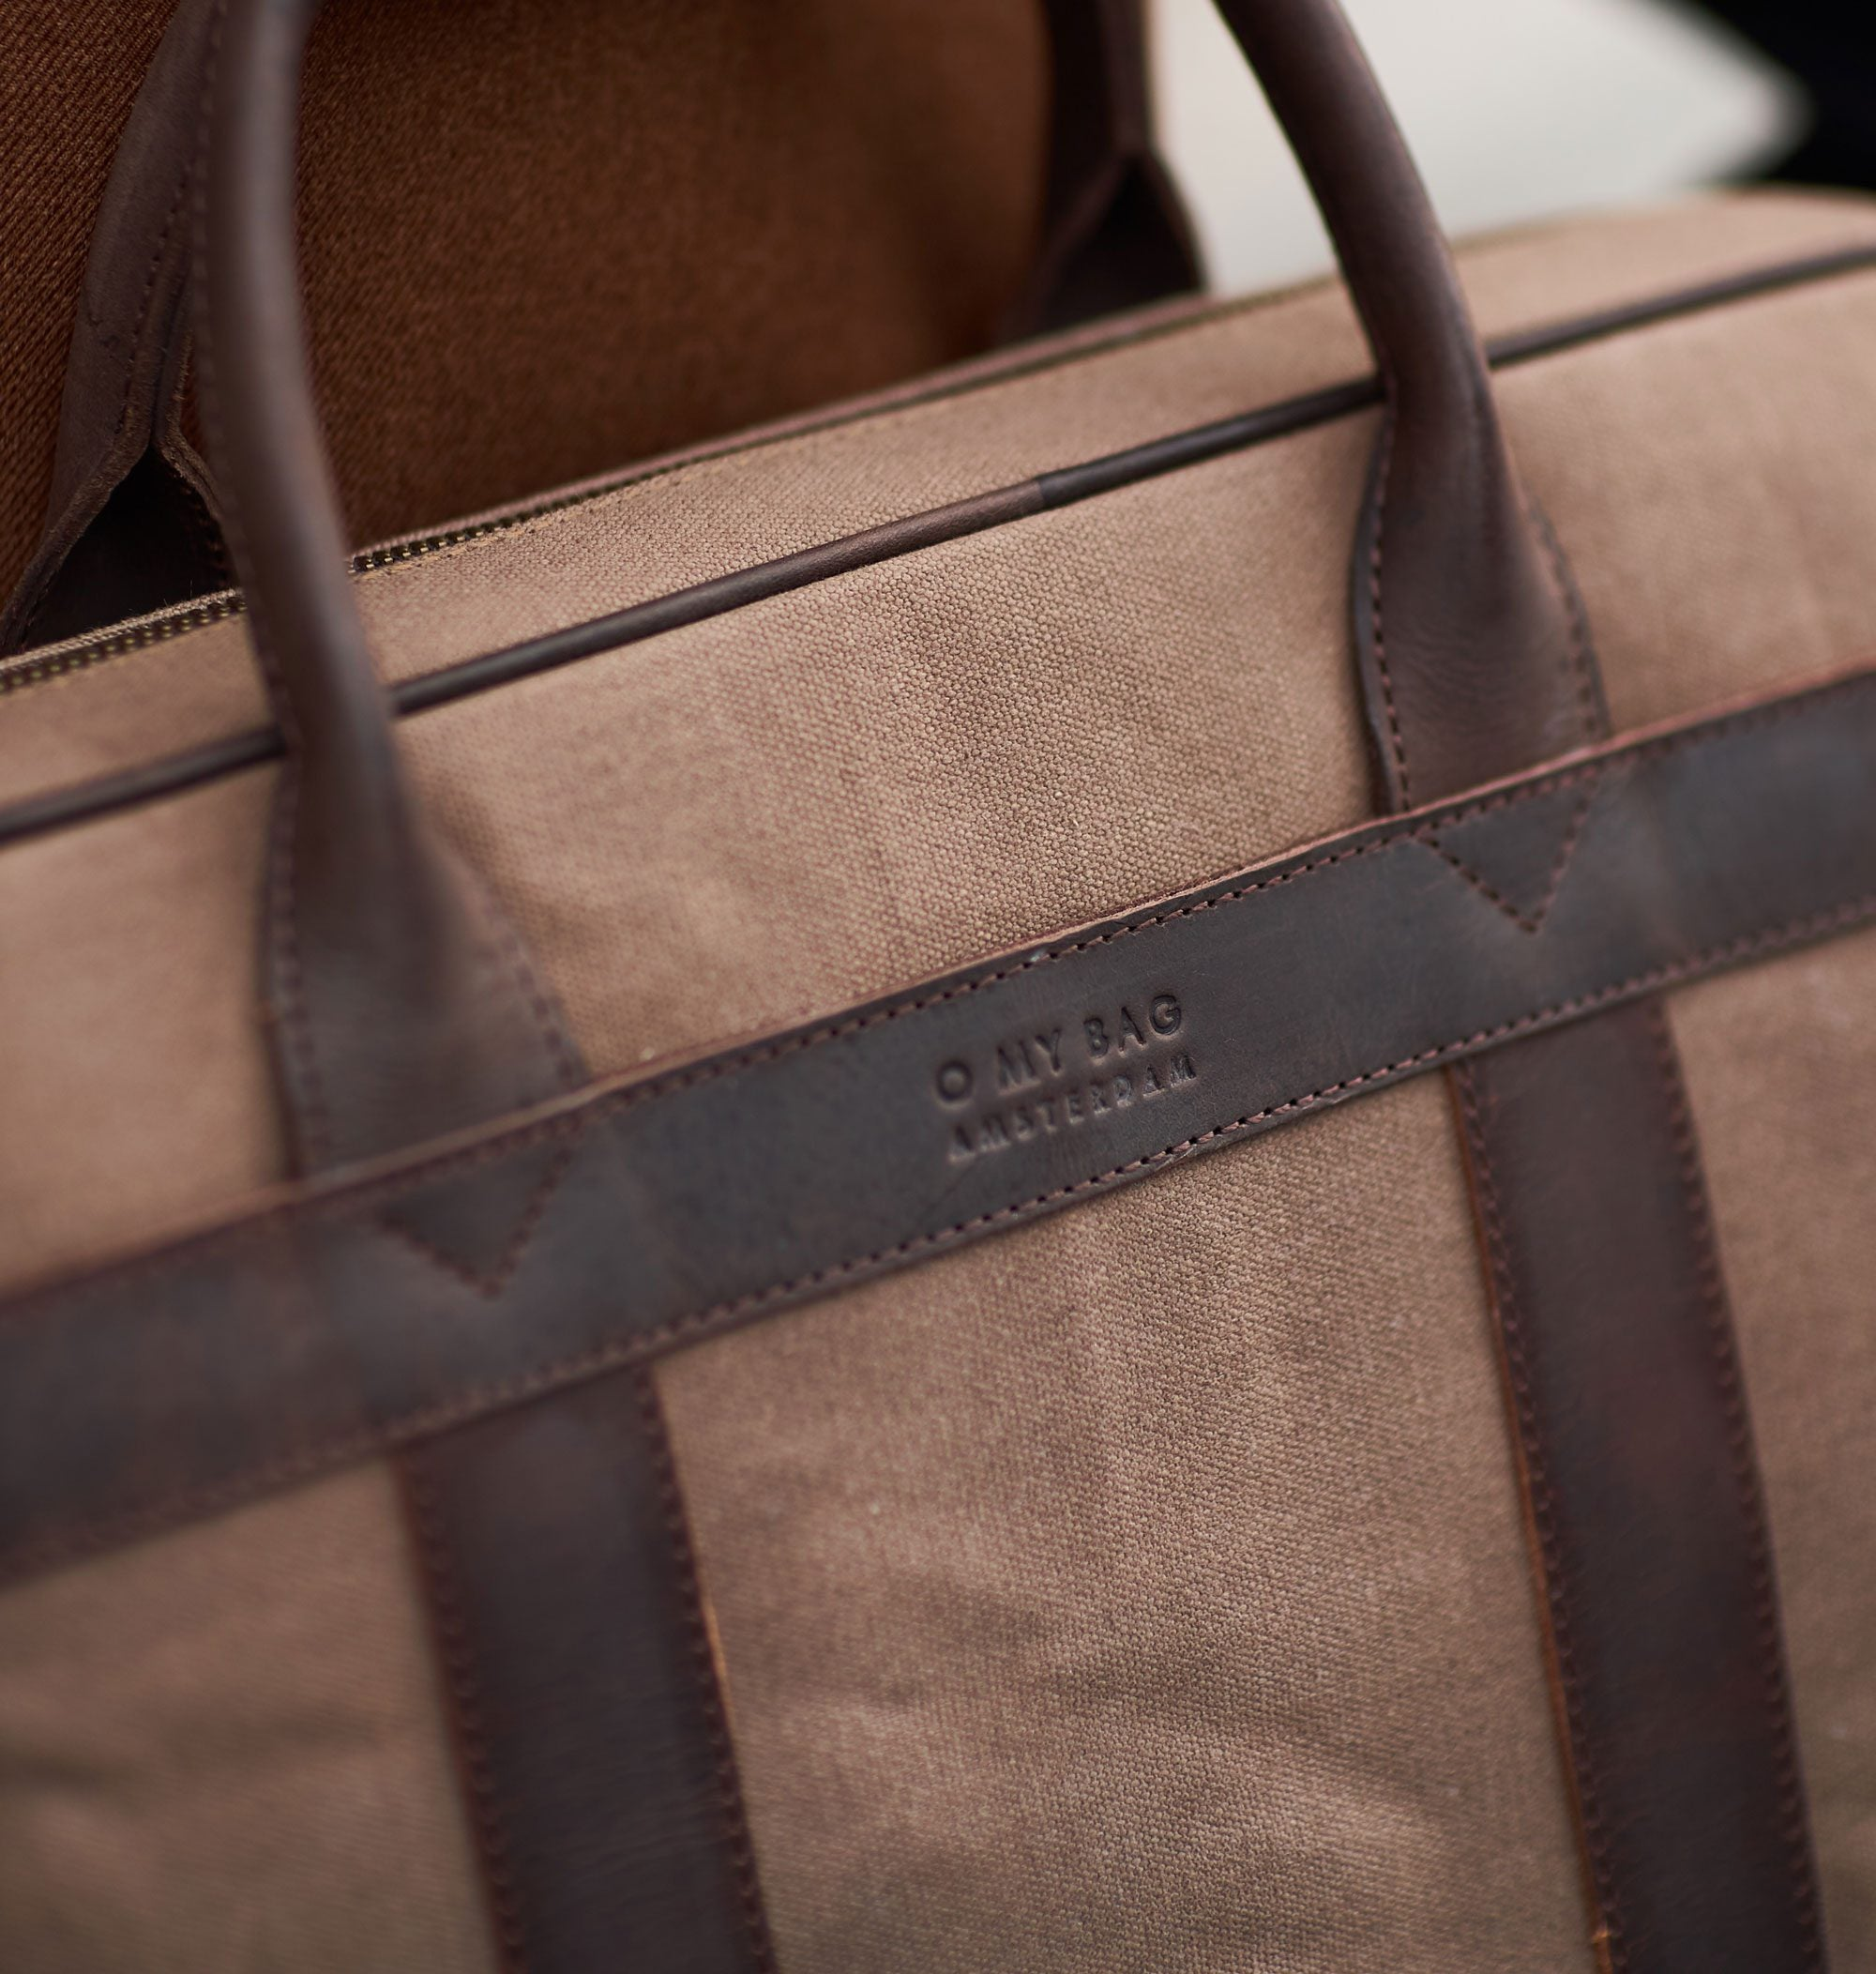 Looking for an O My Bag made out of GOTS certified material? Click here to browse our canvas collection.